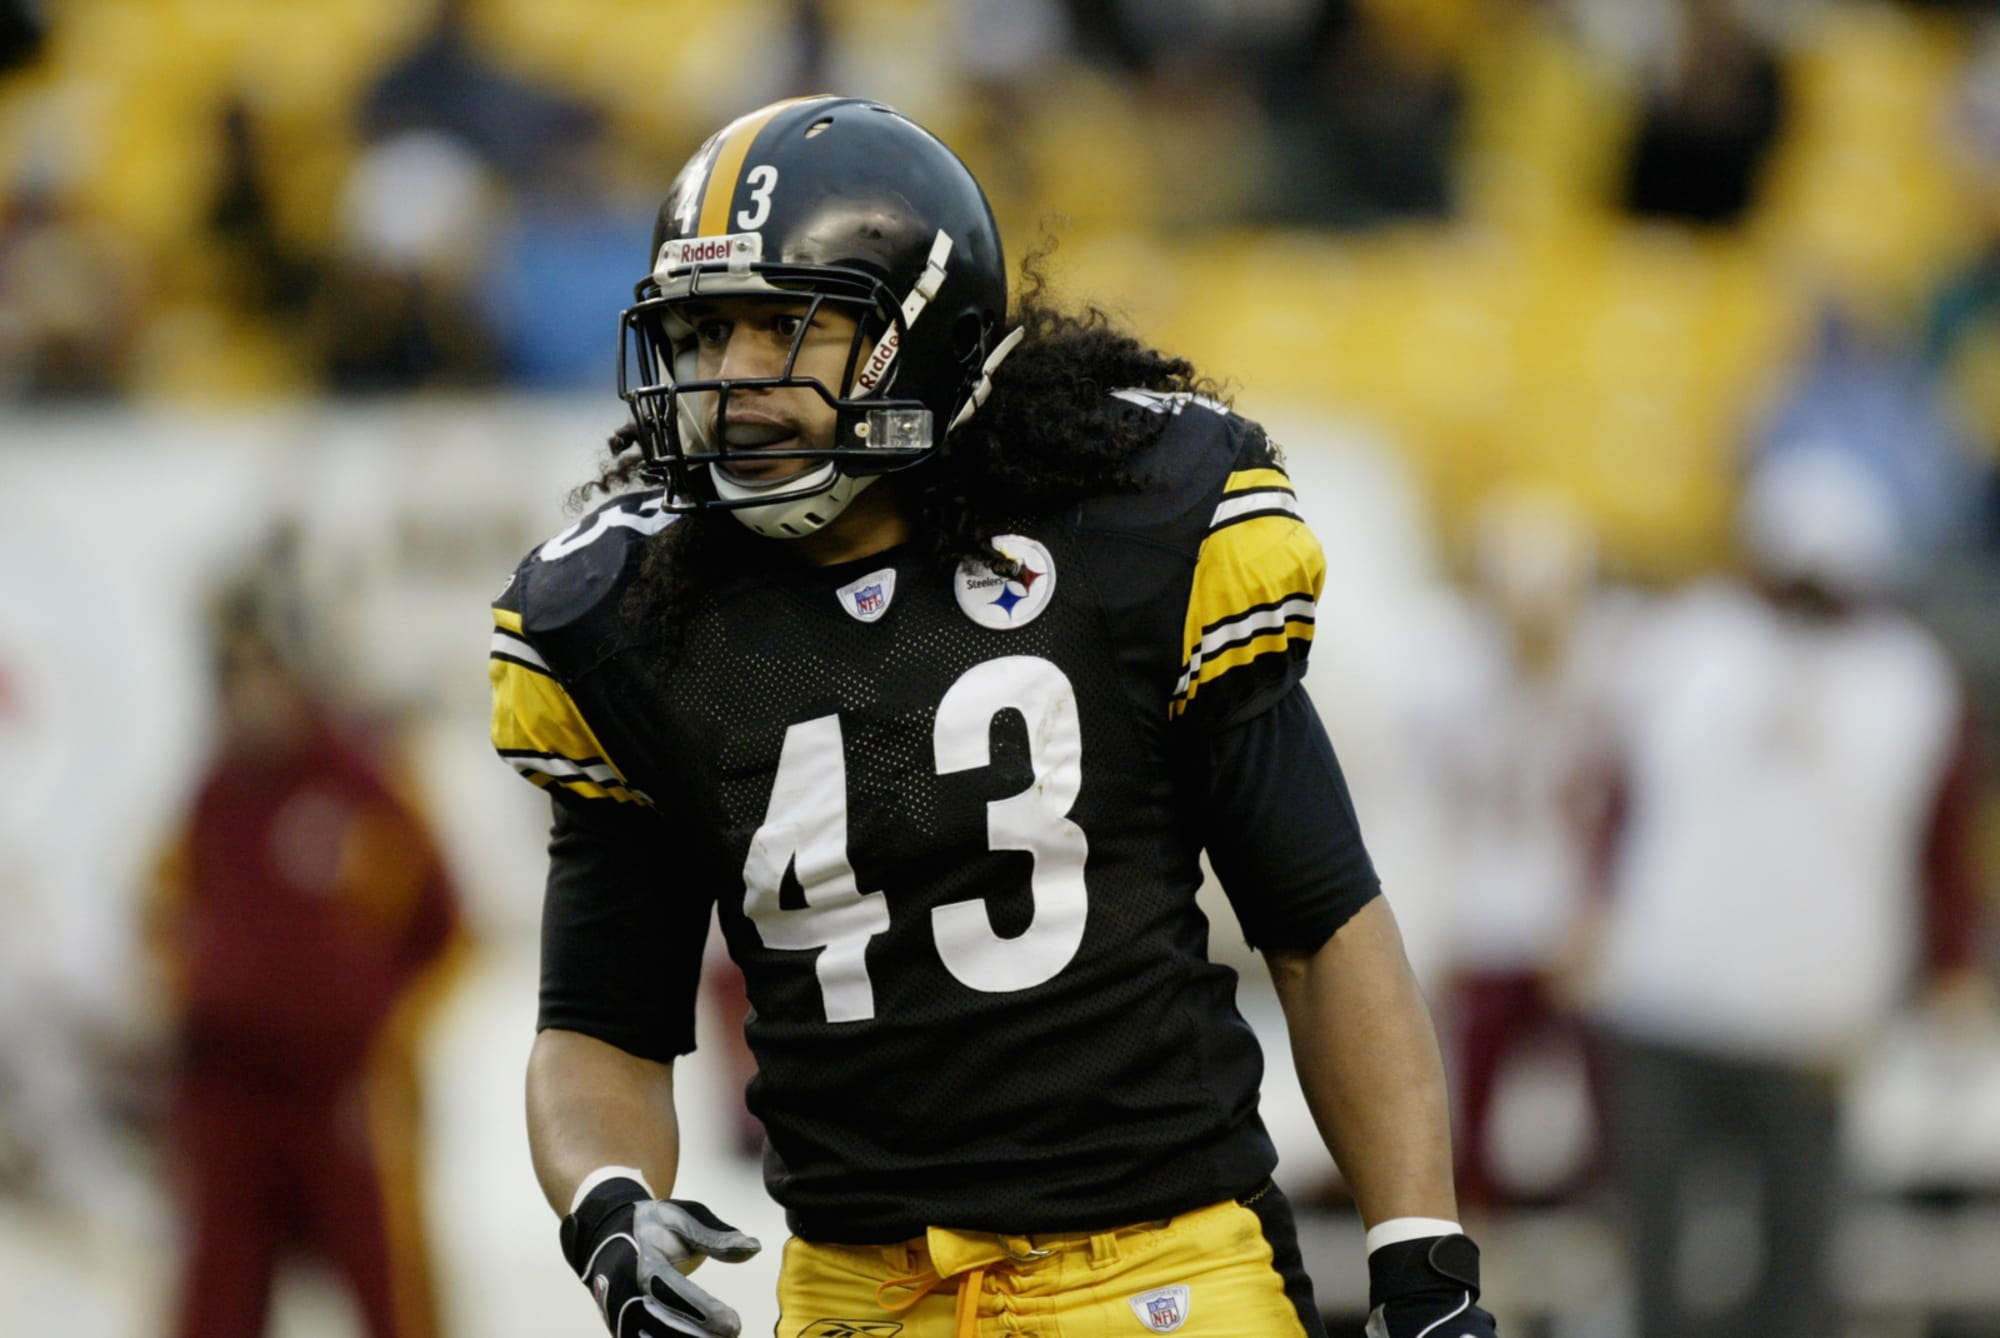 Steelers legend Troy Polamalu goes 4th overall in 2003 NFL re-draft